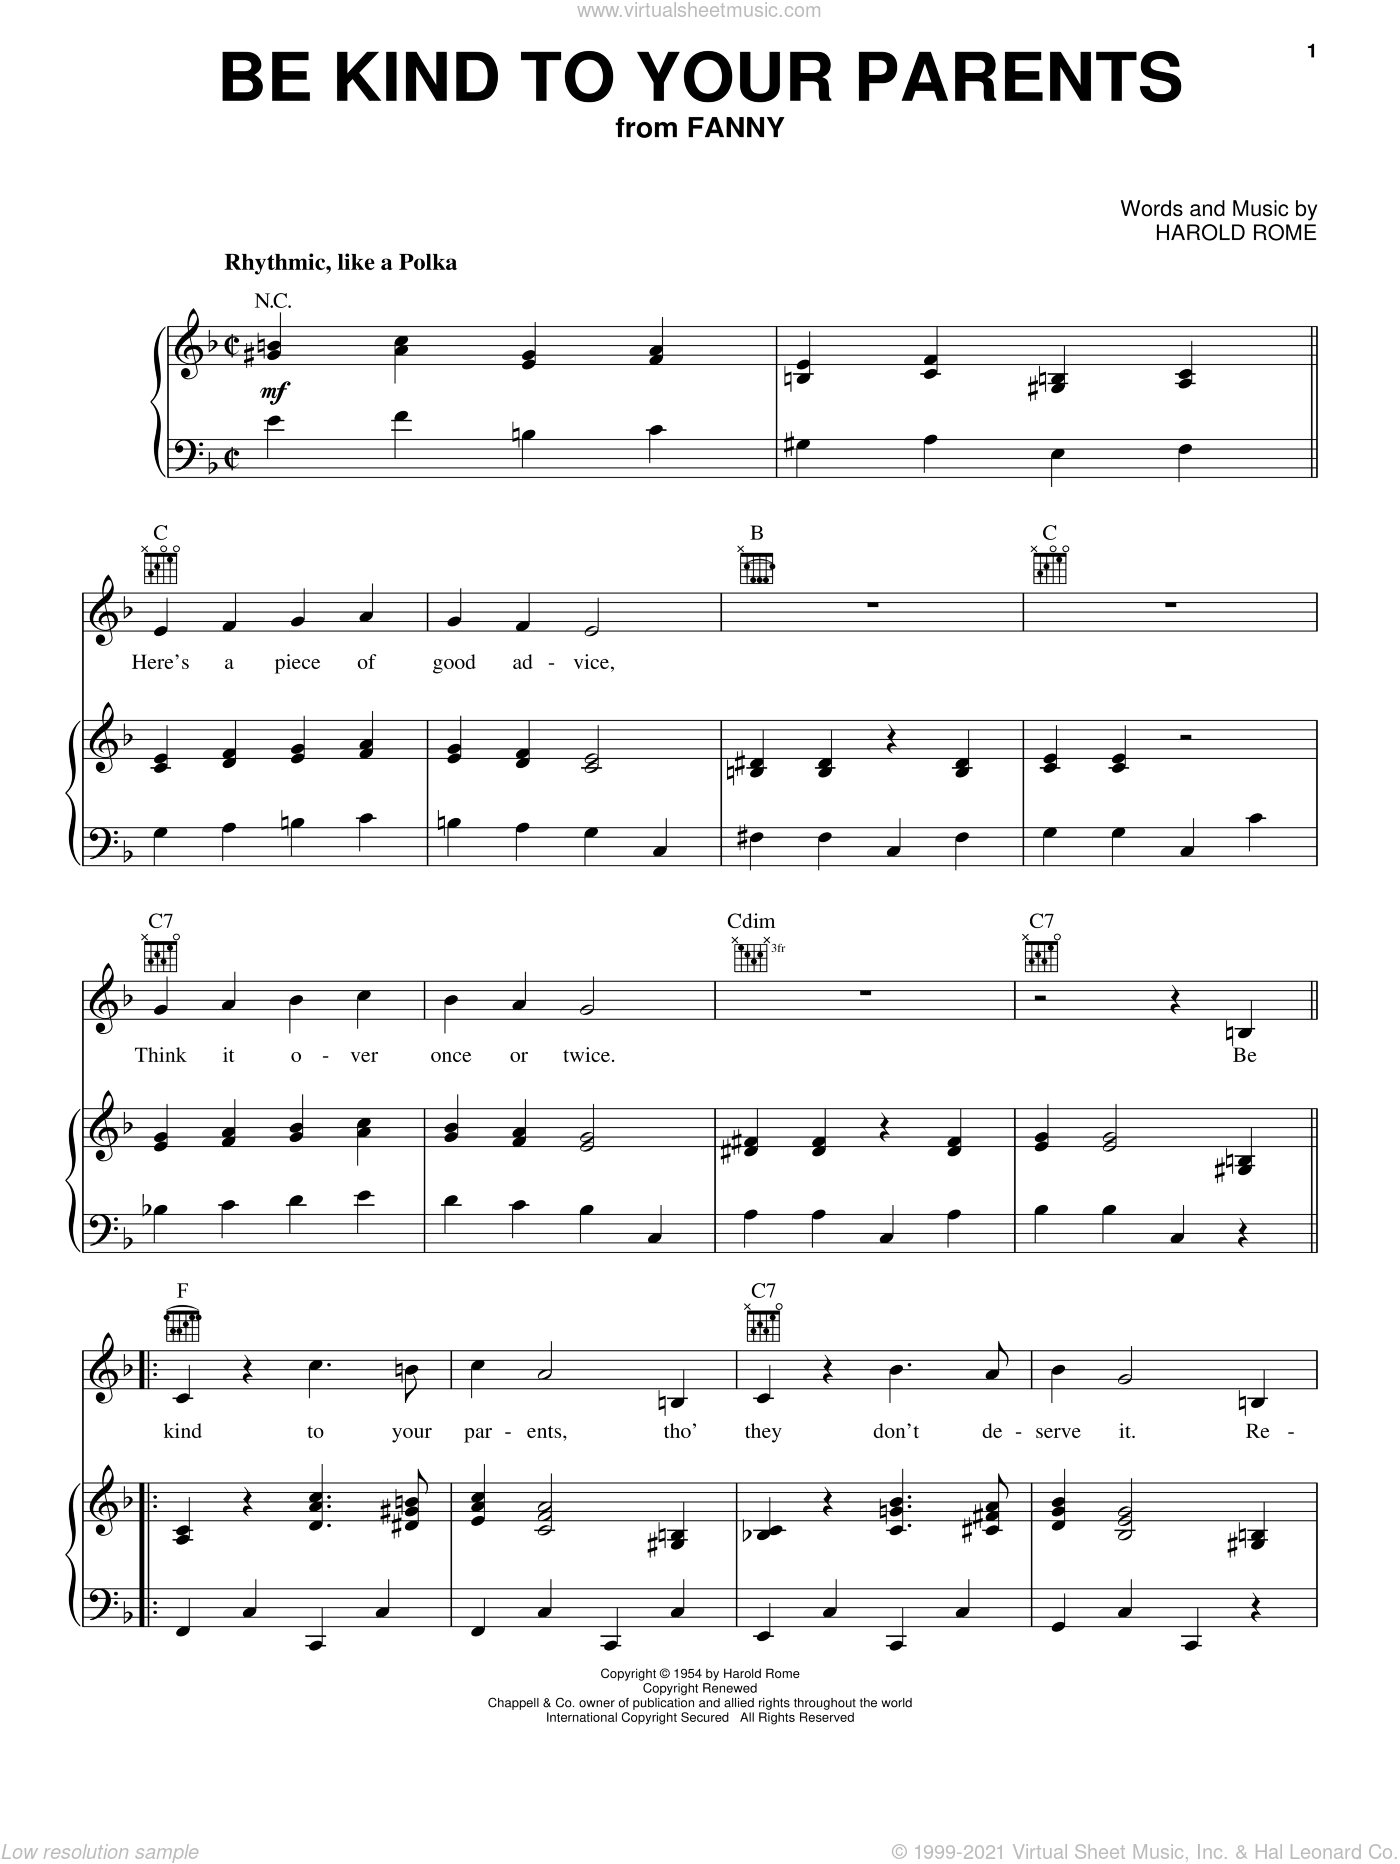 Be Kind To Your Parents sheet music for voice, piano or guitar by Harold Rome. Score Image Preview.